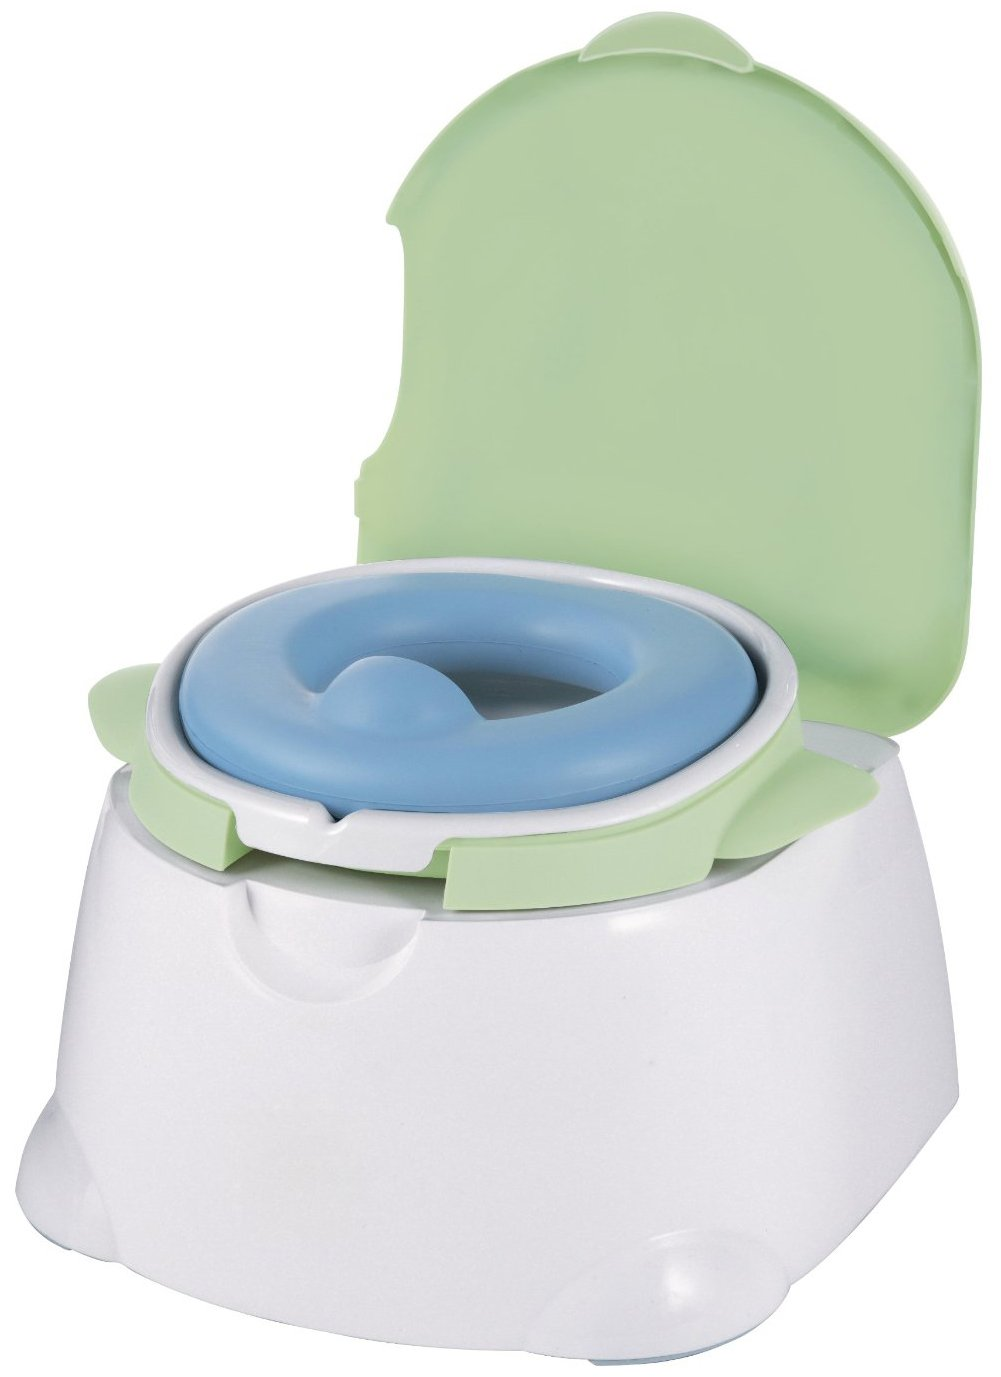 potty chair selection tips | a potty seat for everyone